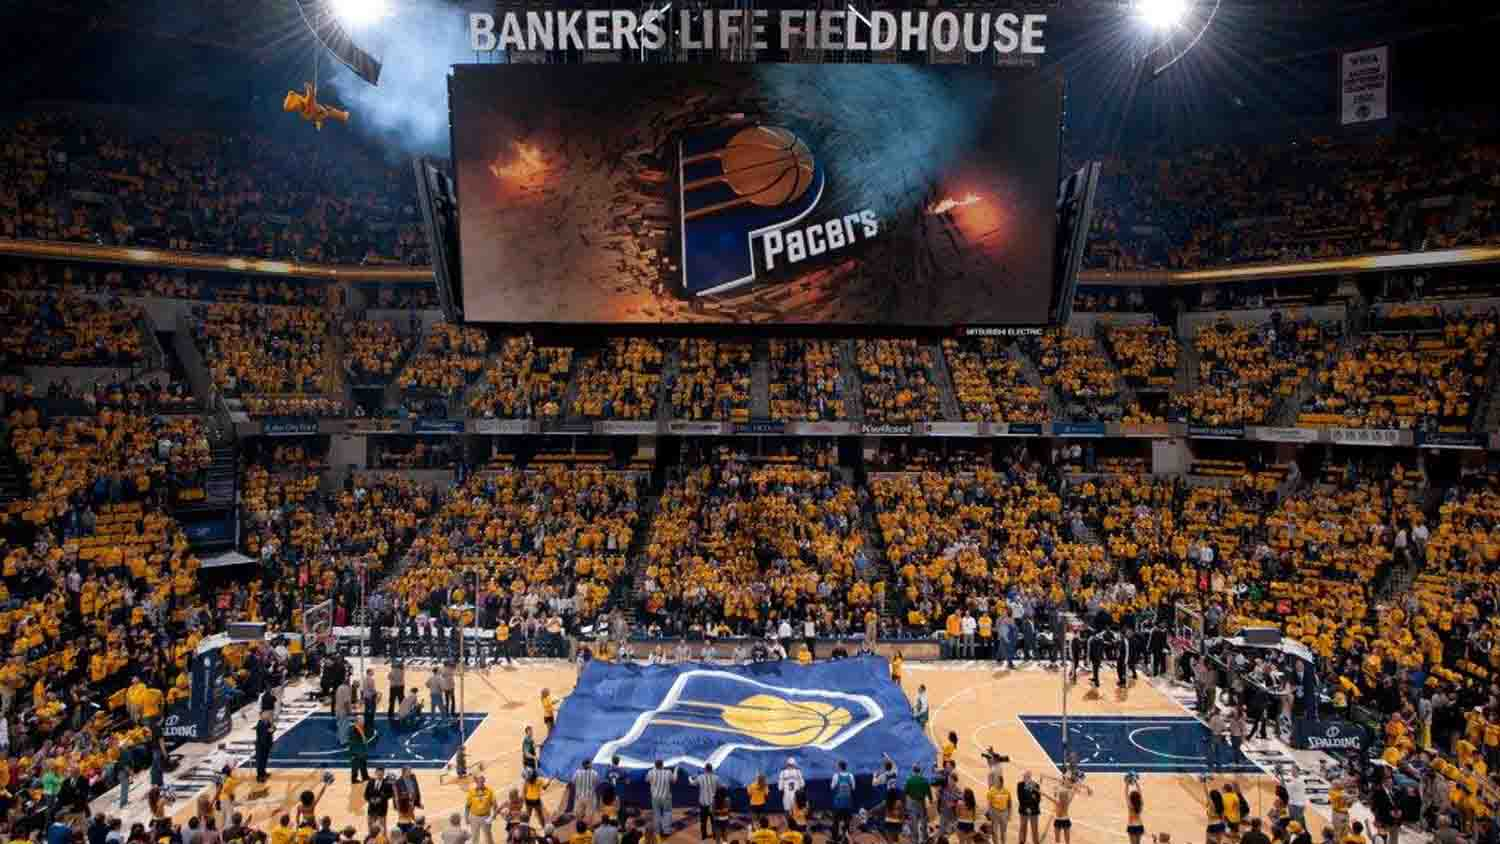 Indiana pacers 1